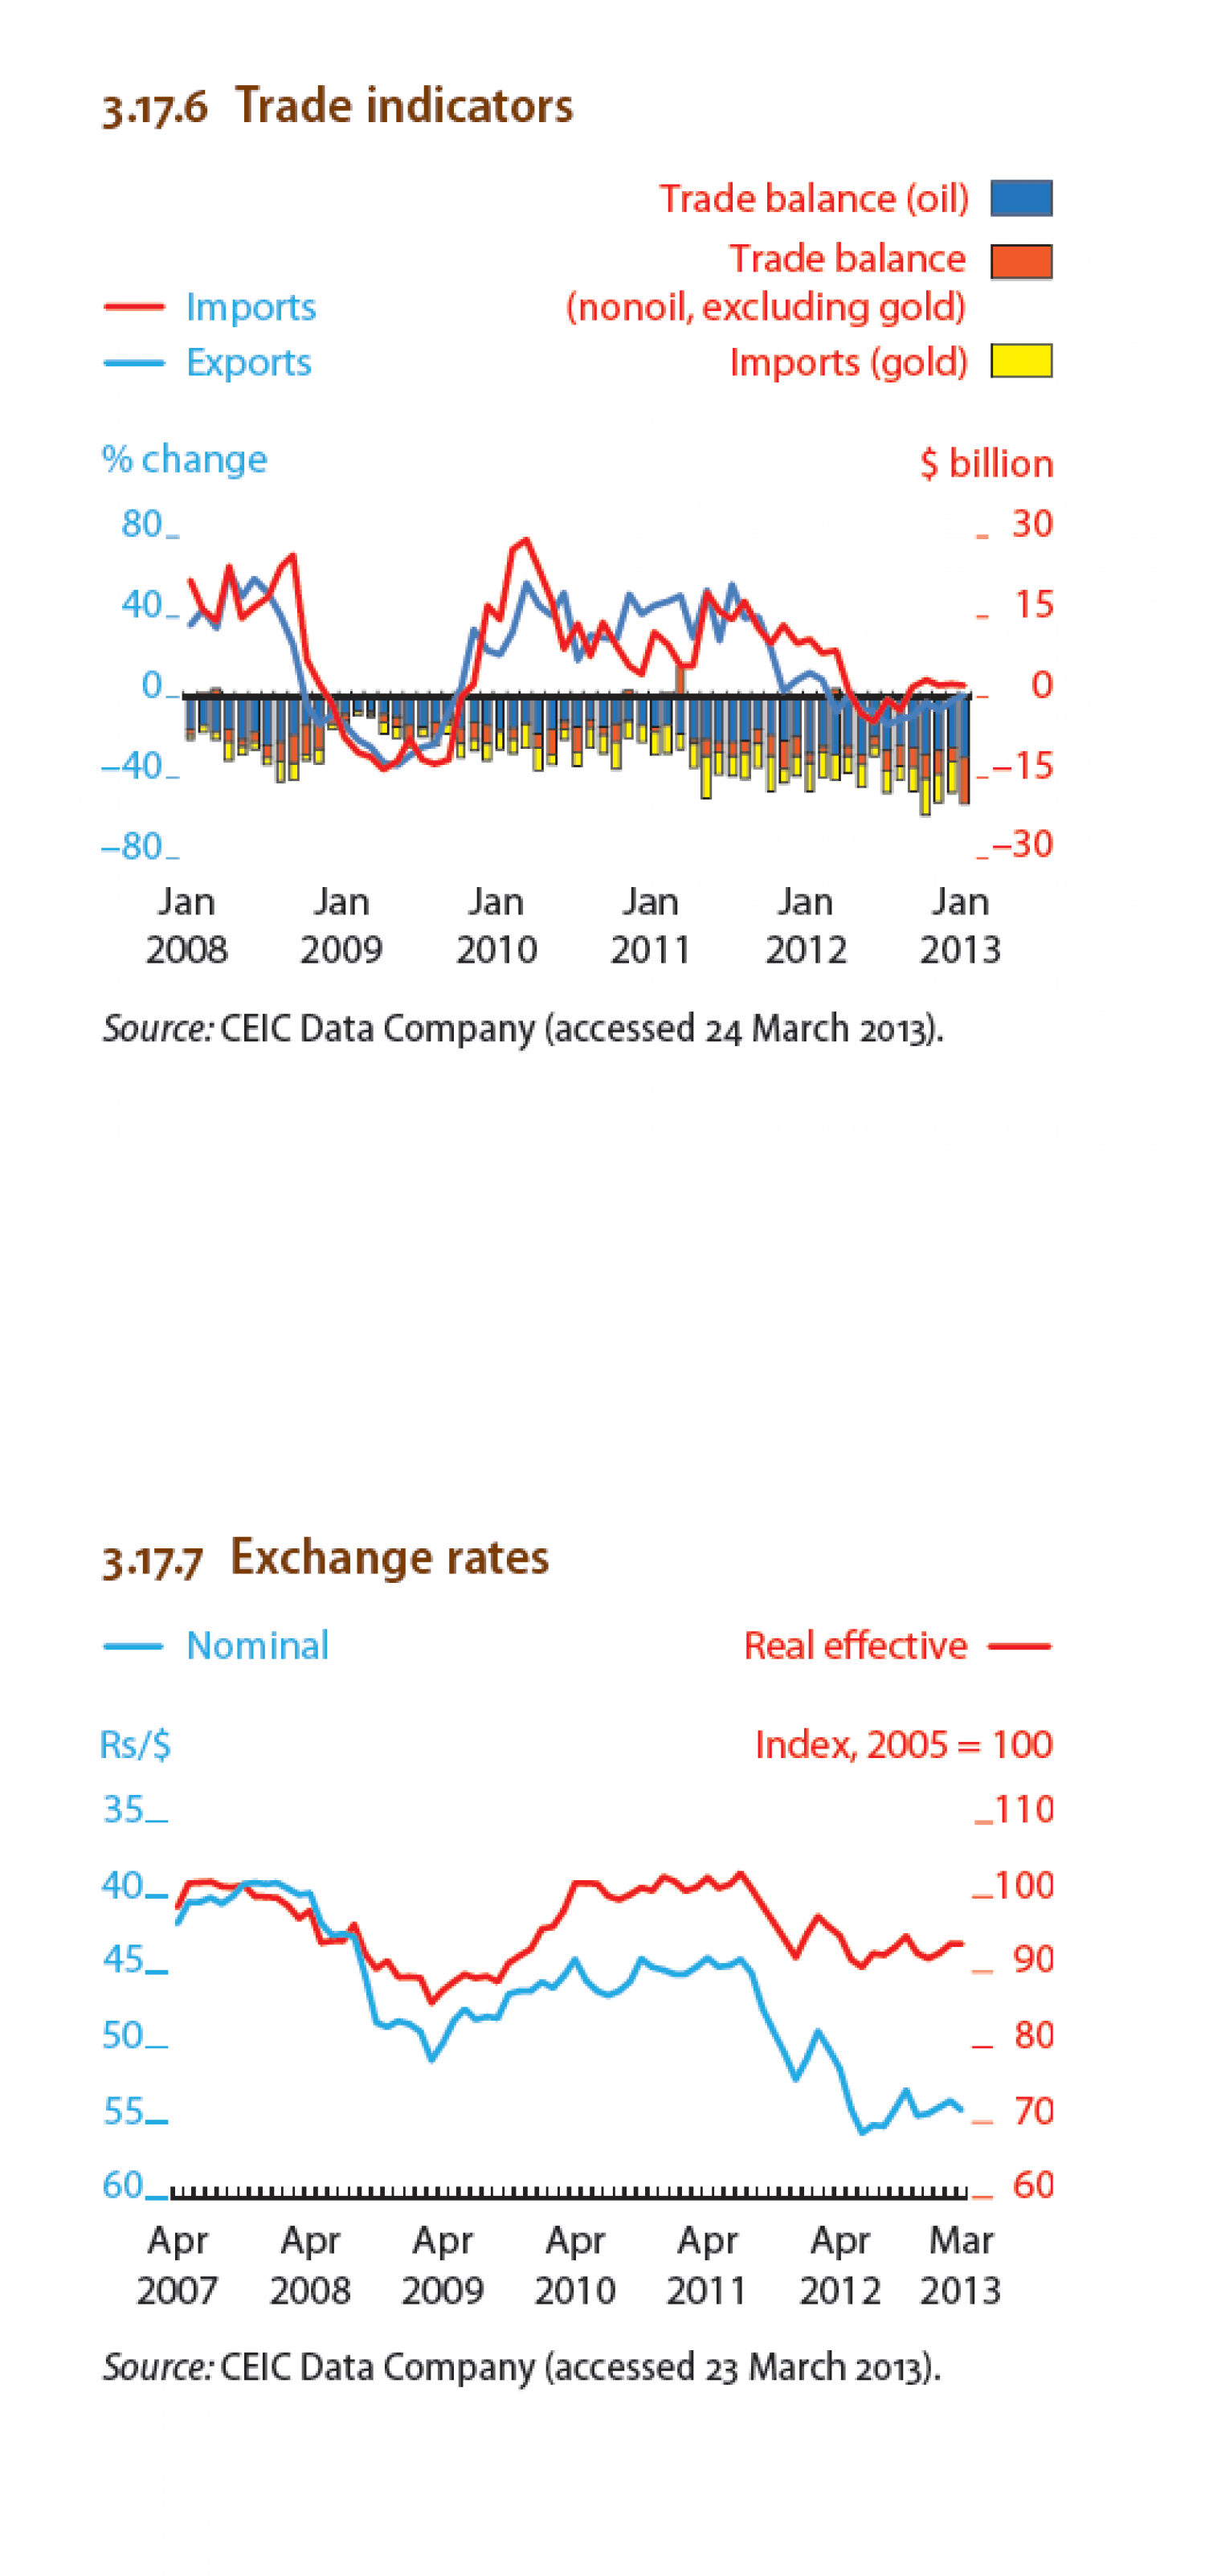 India - Trade indicators , Exchange rates Infographic